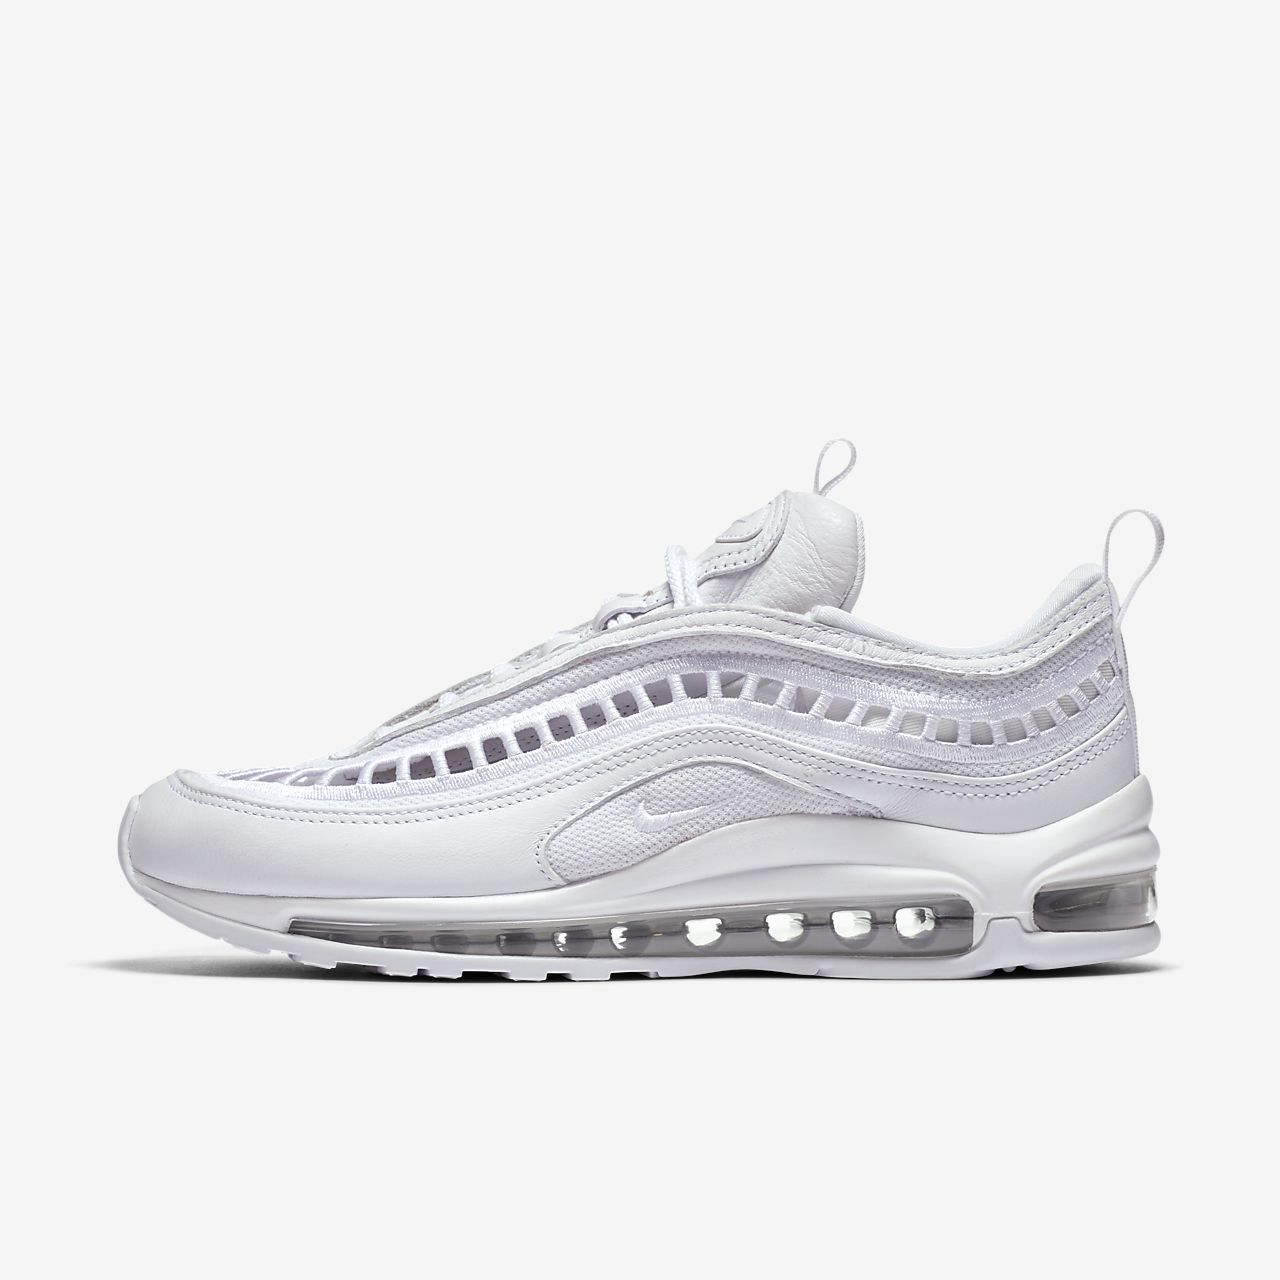 Nike Air Max 97 Premium 'Light Bone' Release Date. Nike⁠+ SNKRS